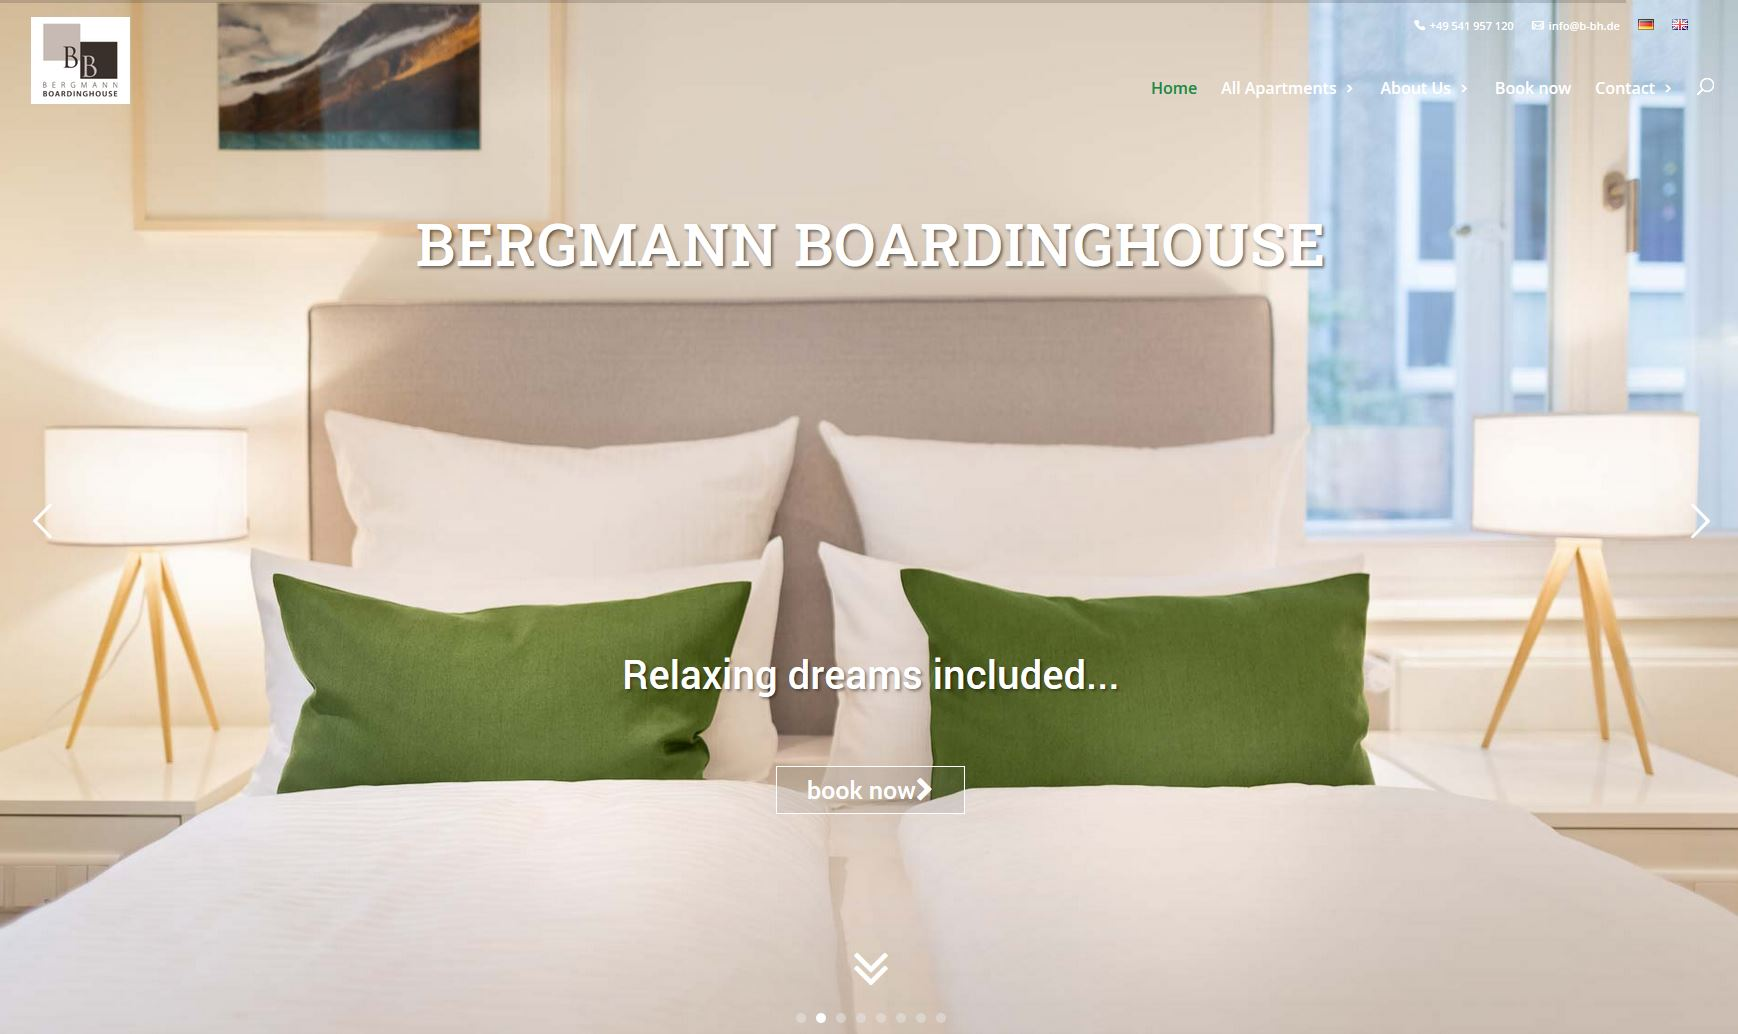 Bergmann Boarding house - cultbooking - book now